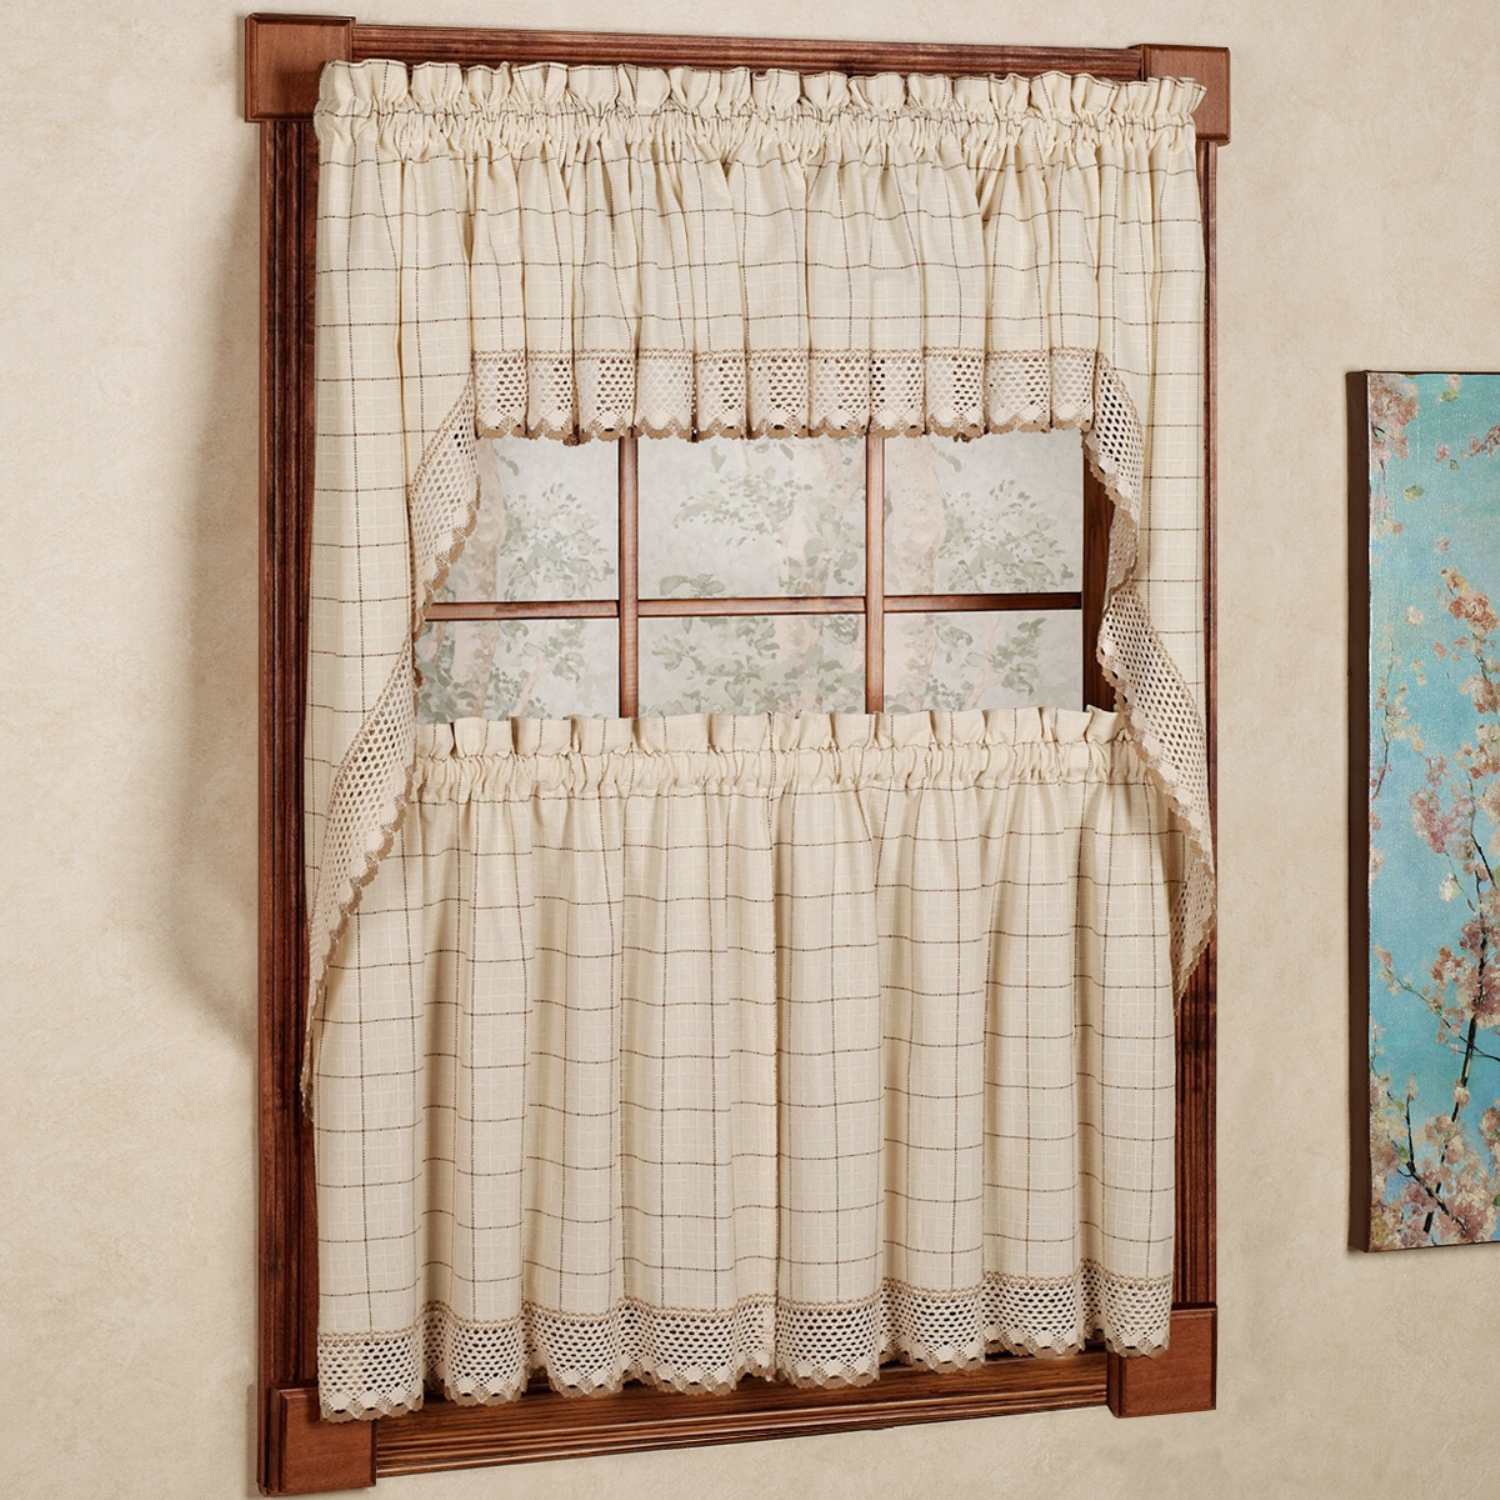 Details About Adirondack Cotton Kitchen Window Curtains – Toast – Tiers, Valance Or Swag Regarding Cotton Blend Classic Checkered Decorative Window Curtains (View 12 of 20)